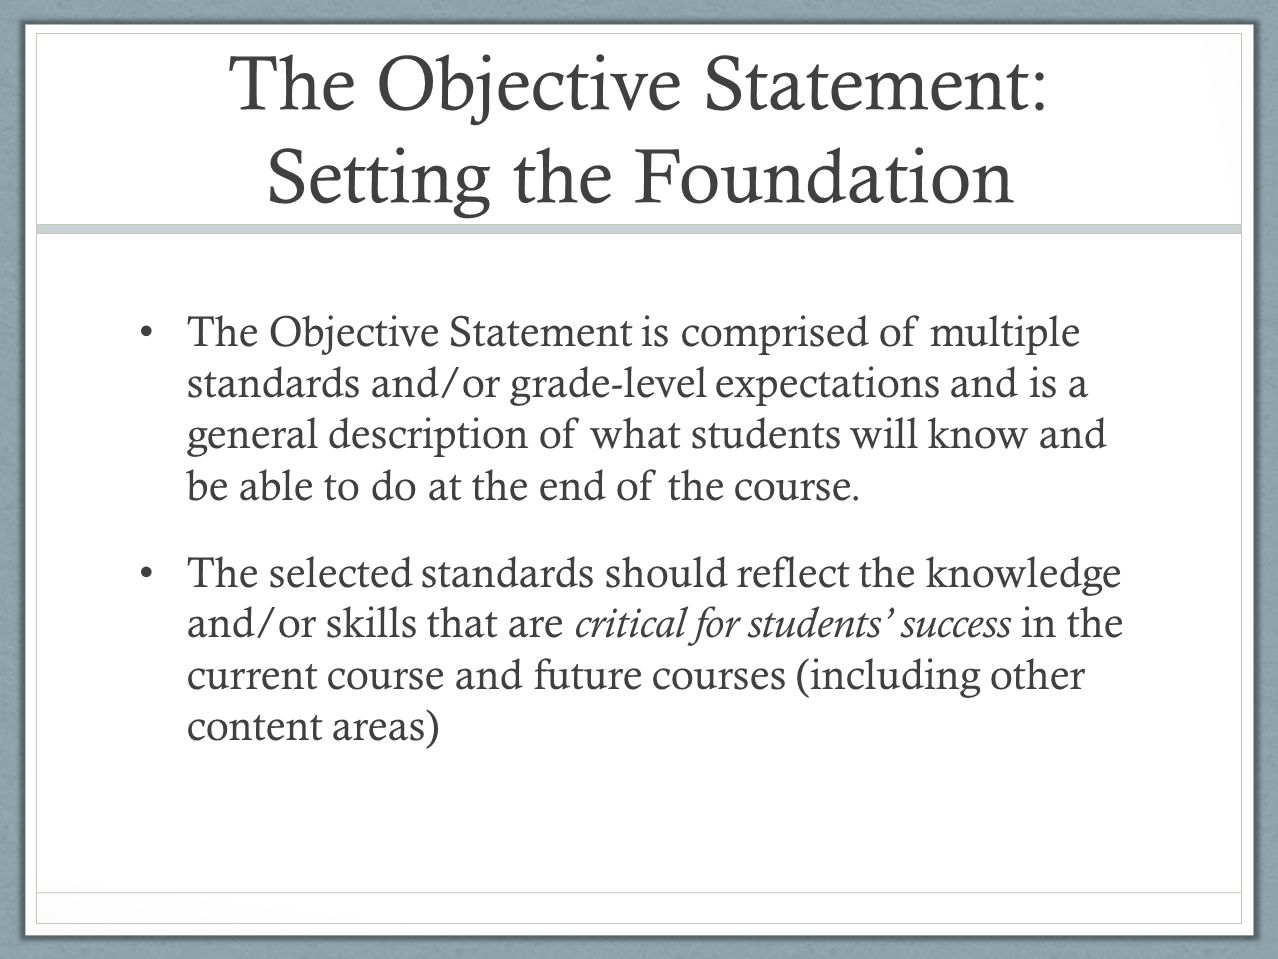 The Objective Statement: Setting the Foundation The Objective Statement is comprised of multiple standards and/or grade-level expectations and is a general description of what students will know and be able to do at the end of the course.